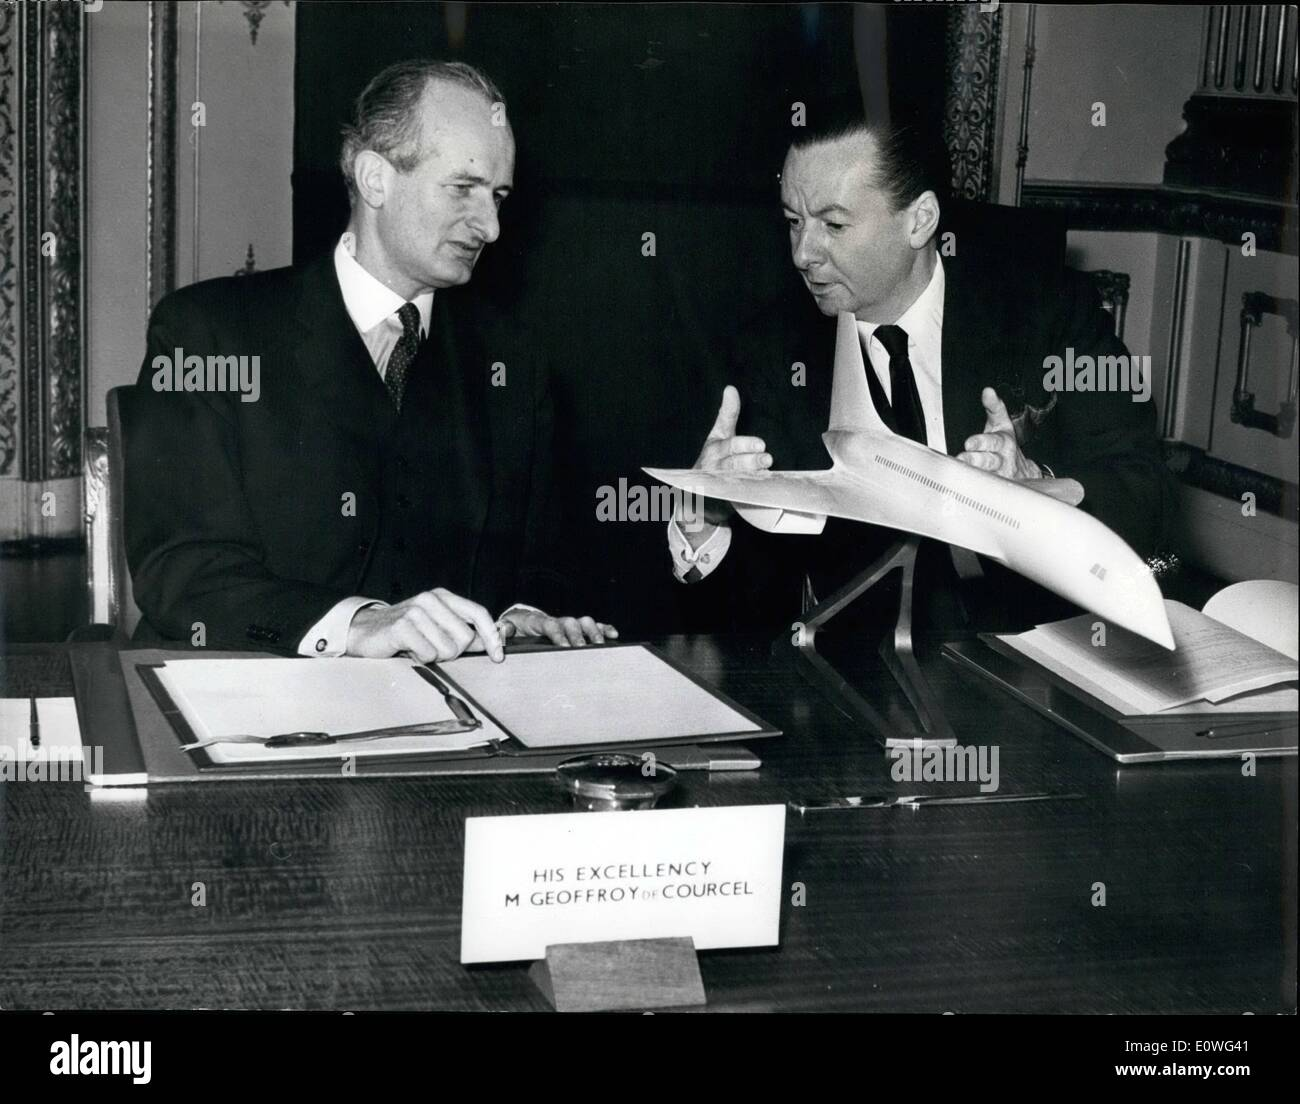 Nov. 11, 1962 - Angelo-French supersonic airliner agreement signed: Mr Julian Amery (right), the Minister of Aviation and M. Geoffroy de Courcel, the french Ambassador in London, look in a model of a proposed supersonic airliner in Lancaster house, London, today, after they signed am Angelo-French agreement fir the joint development of a supersonic airliner. Each country has agreed to spend between ?75 and ?85 million for development and tooling of production lines. - Stock Image